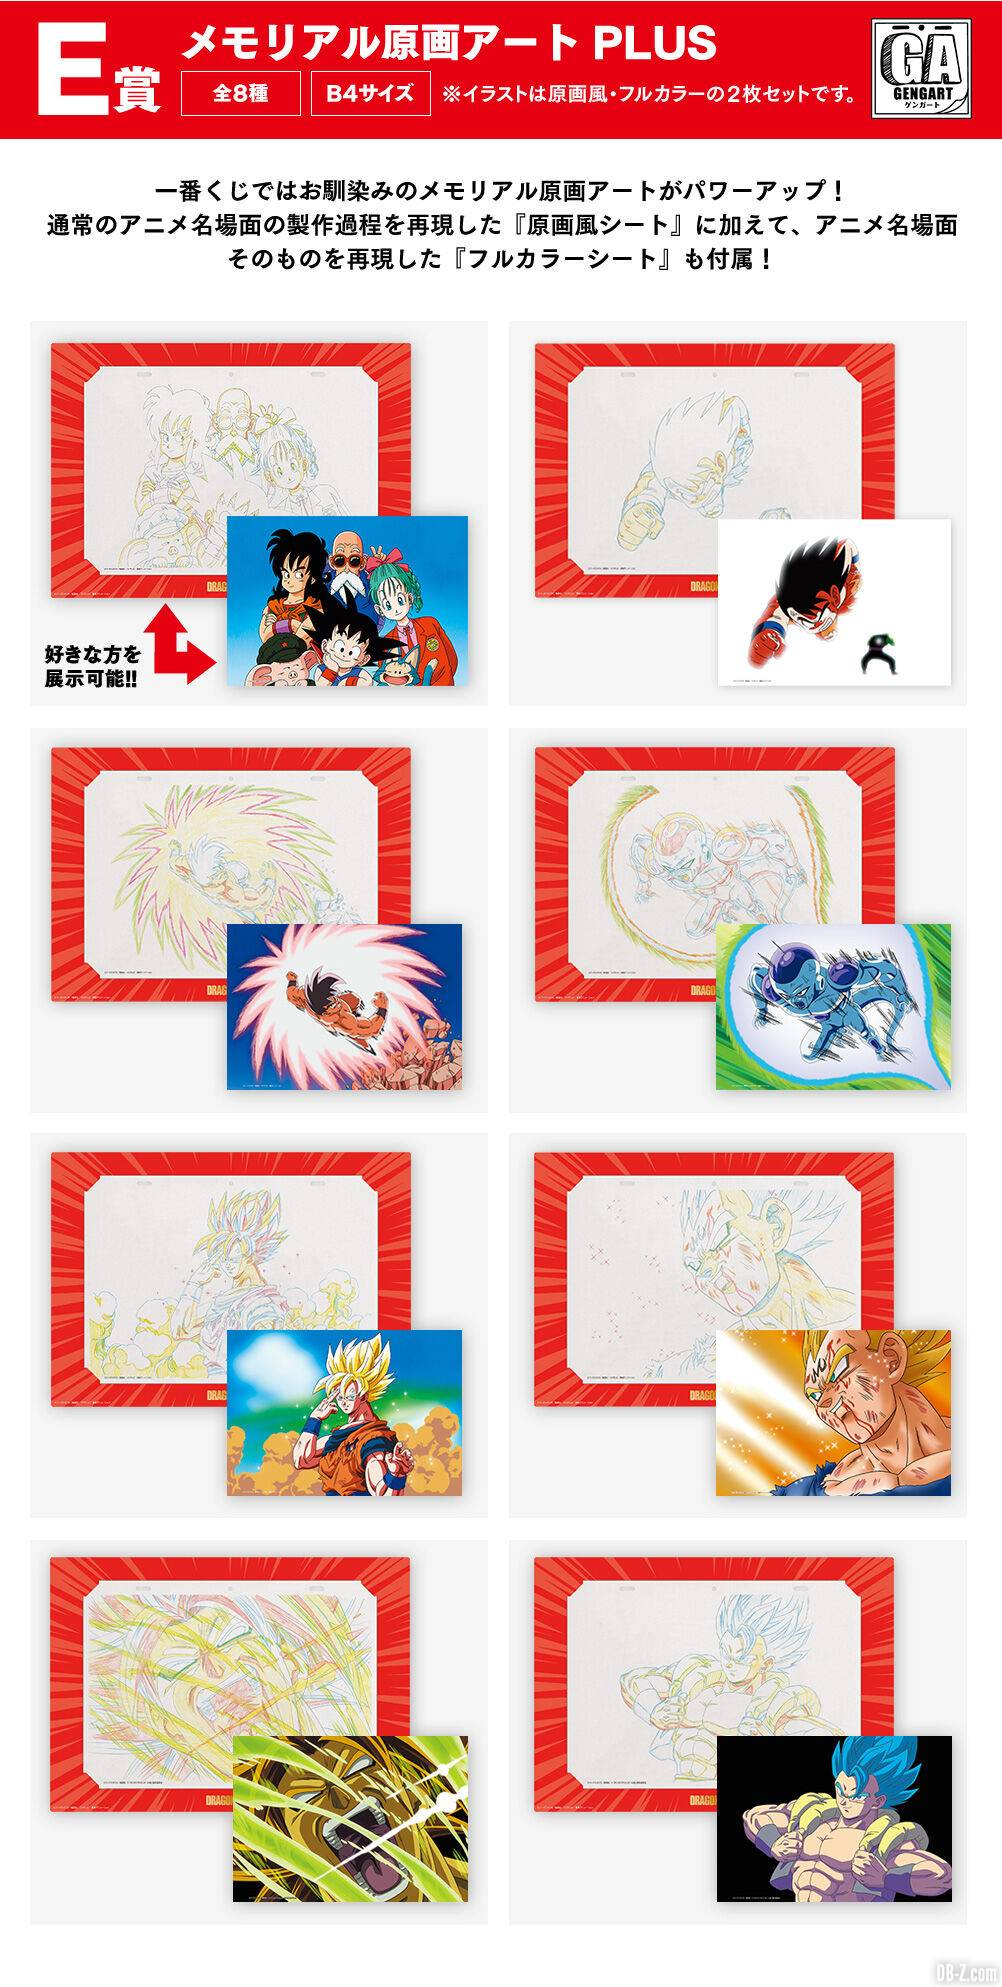 Memorial Genga Art Plus Dragon Ball Ichiban Kuji History of Rivals